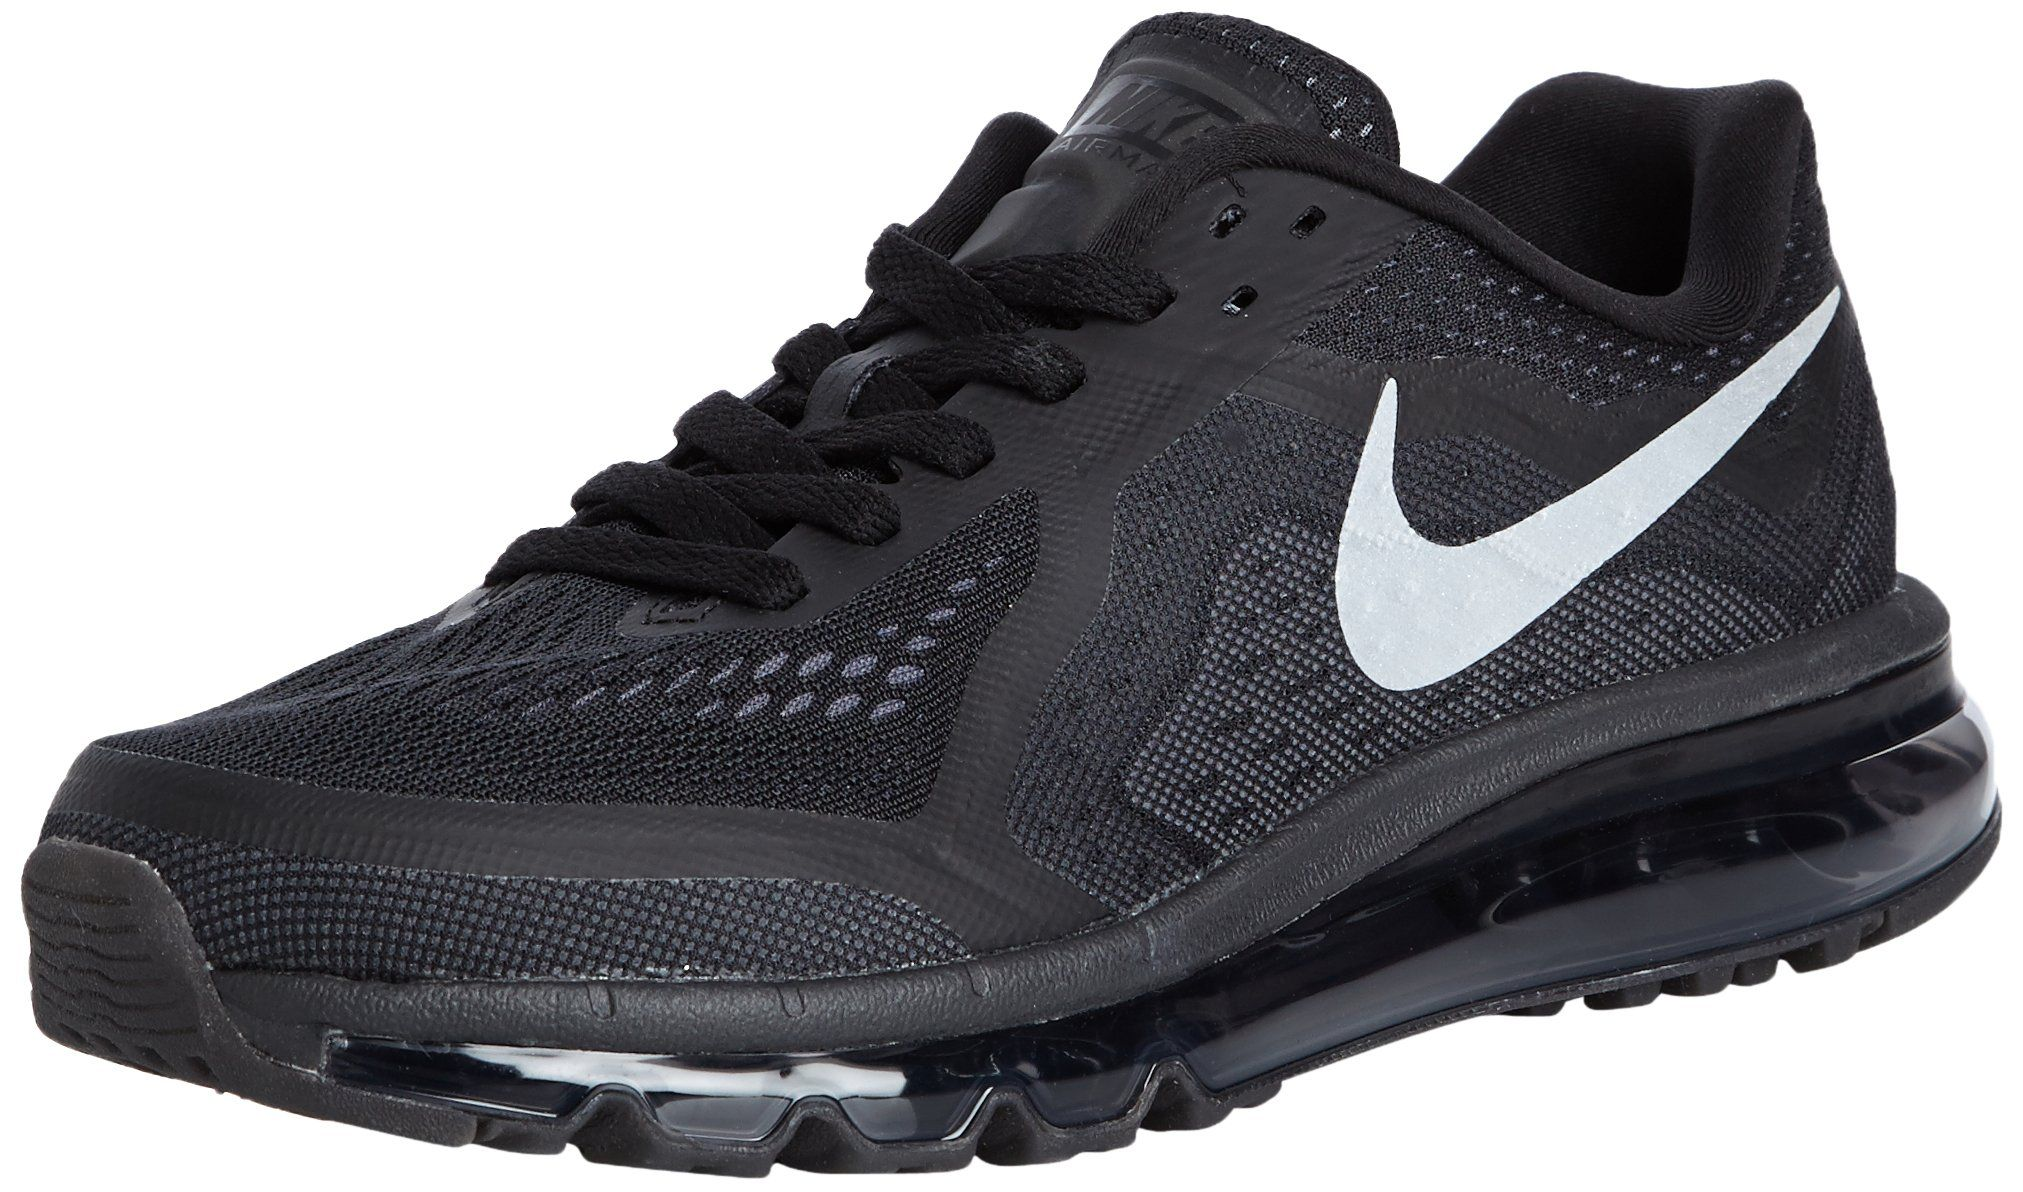 online store 6529d c713a Nike Air Max 2014 Men Sneaker Black Anthracite Dark Grey Reflect Silver  621077-001 (10 D(M) US)